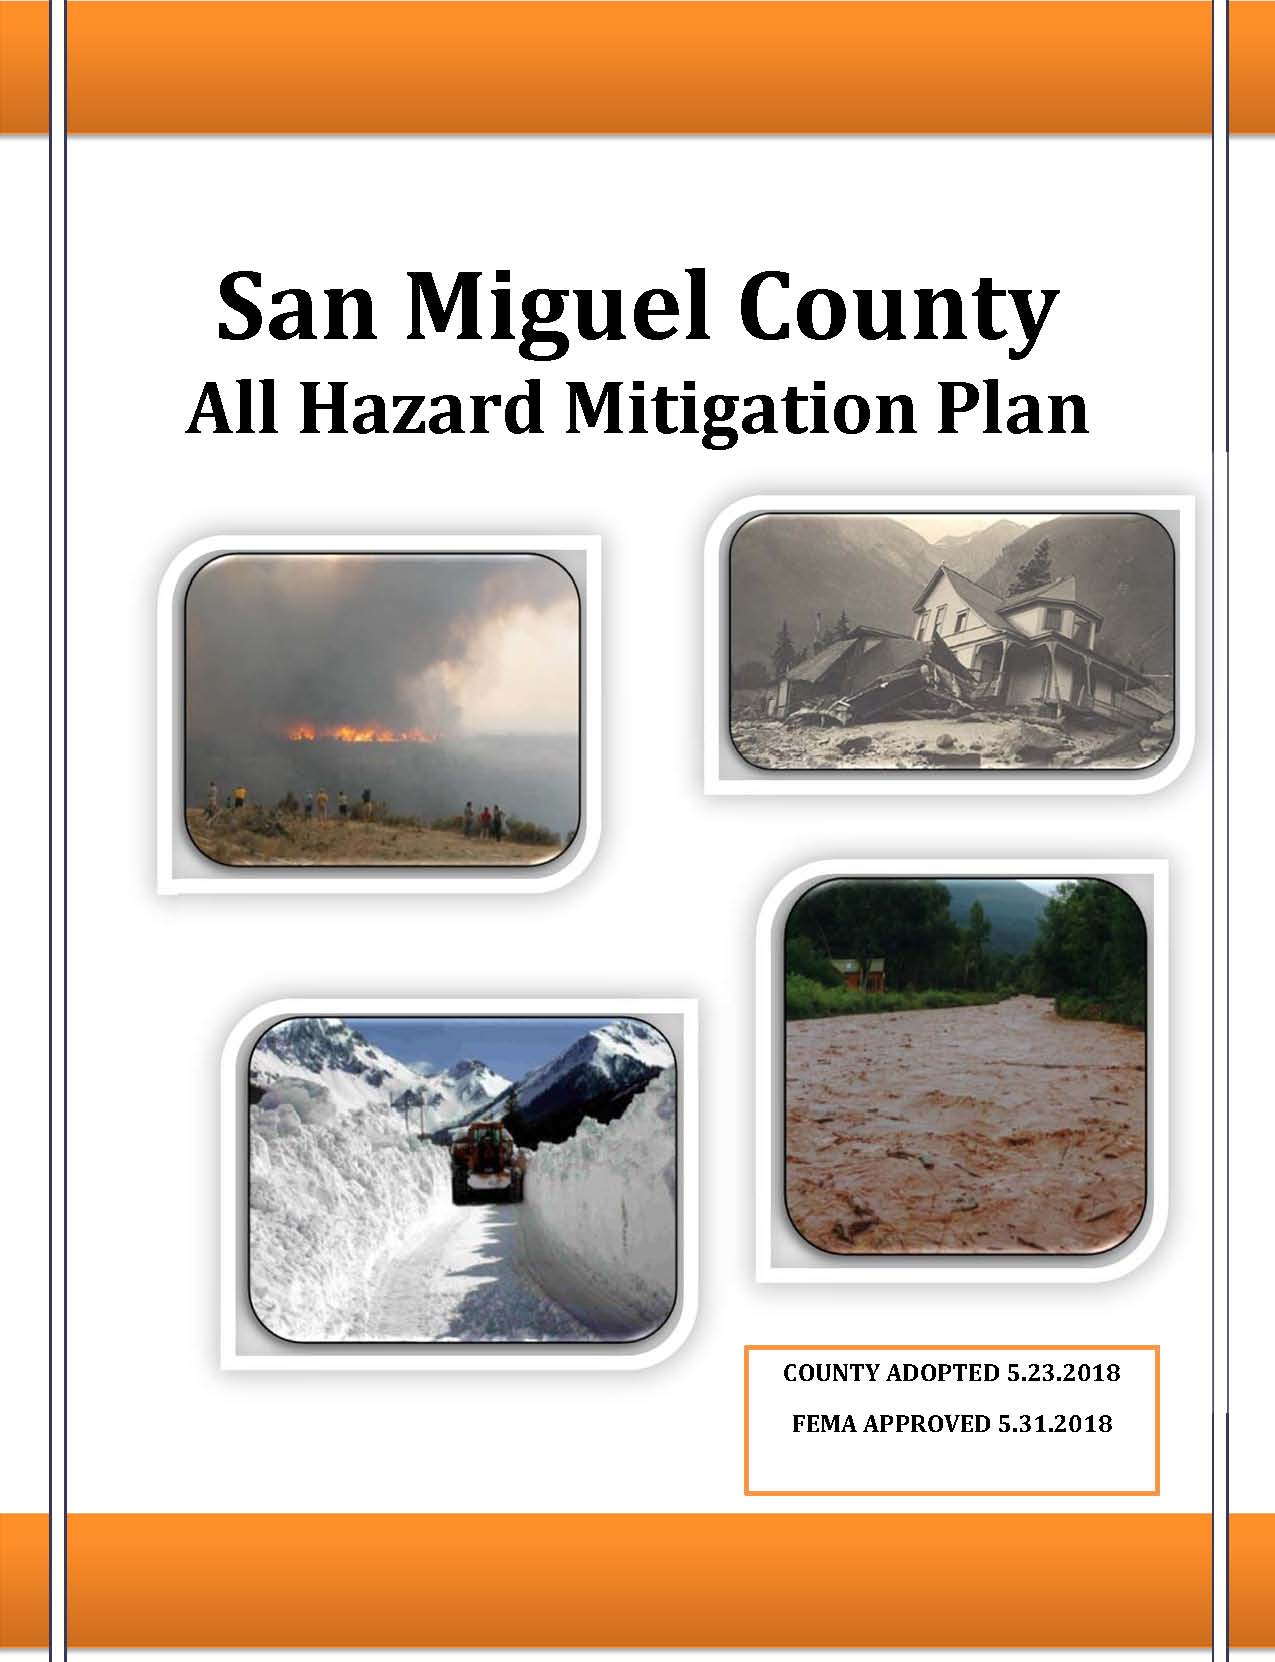 San Miguel County AHMP Cover Page